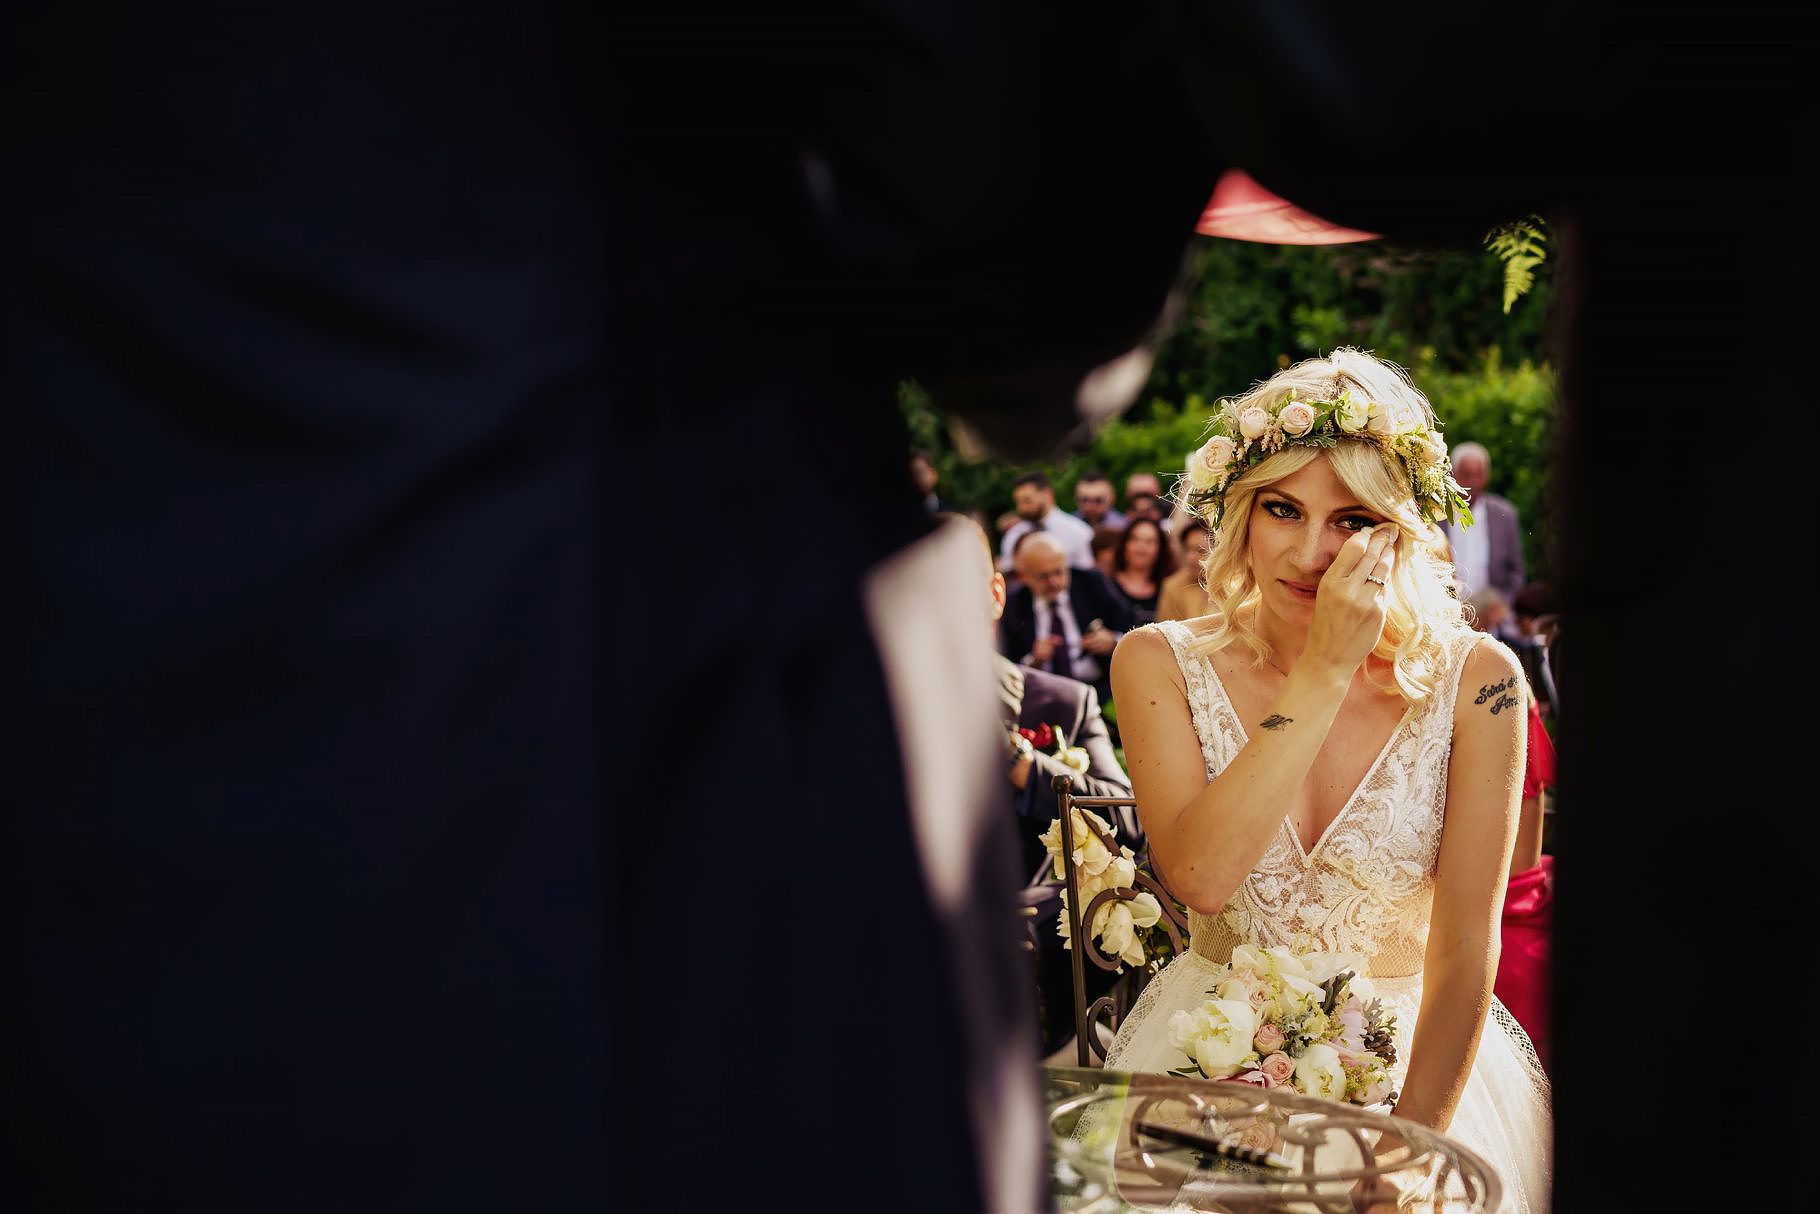 the bride getting moved during the groom speech at the outdoor wedding at villa rosantica